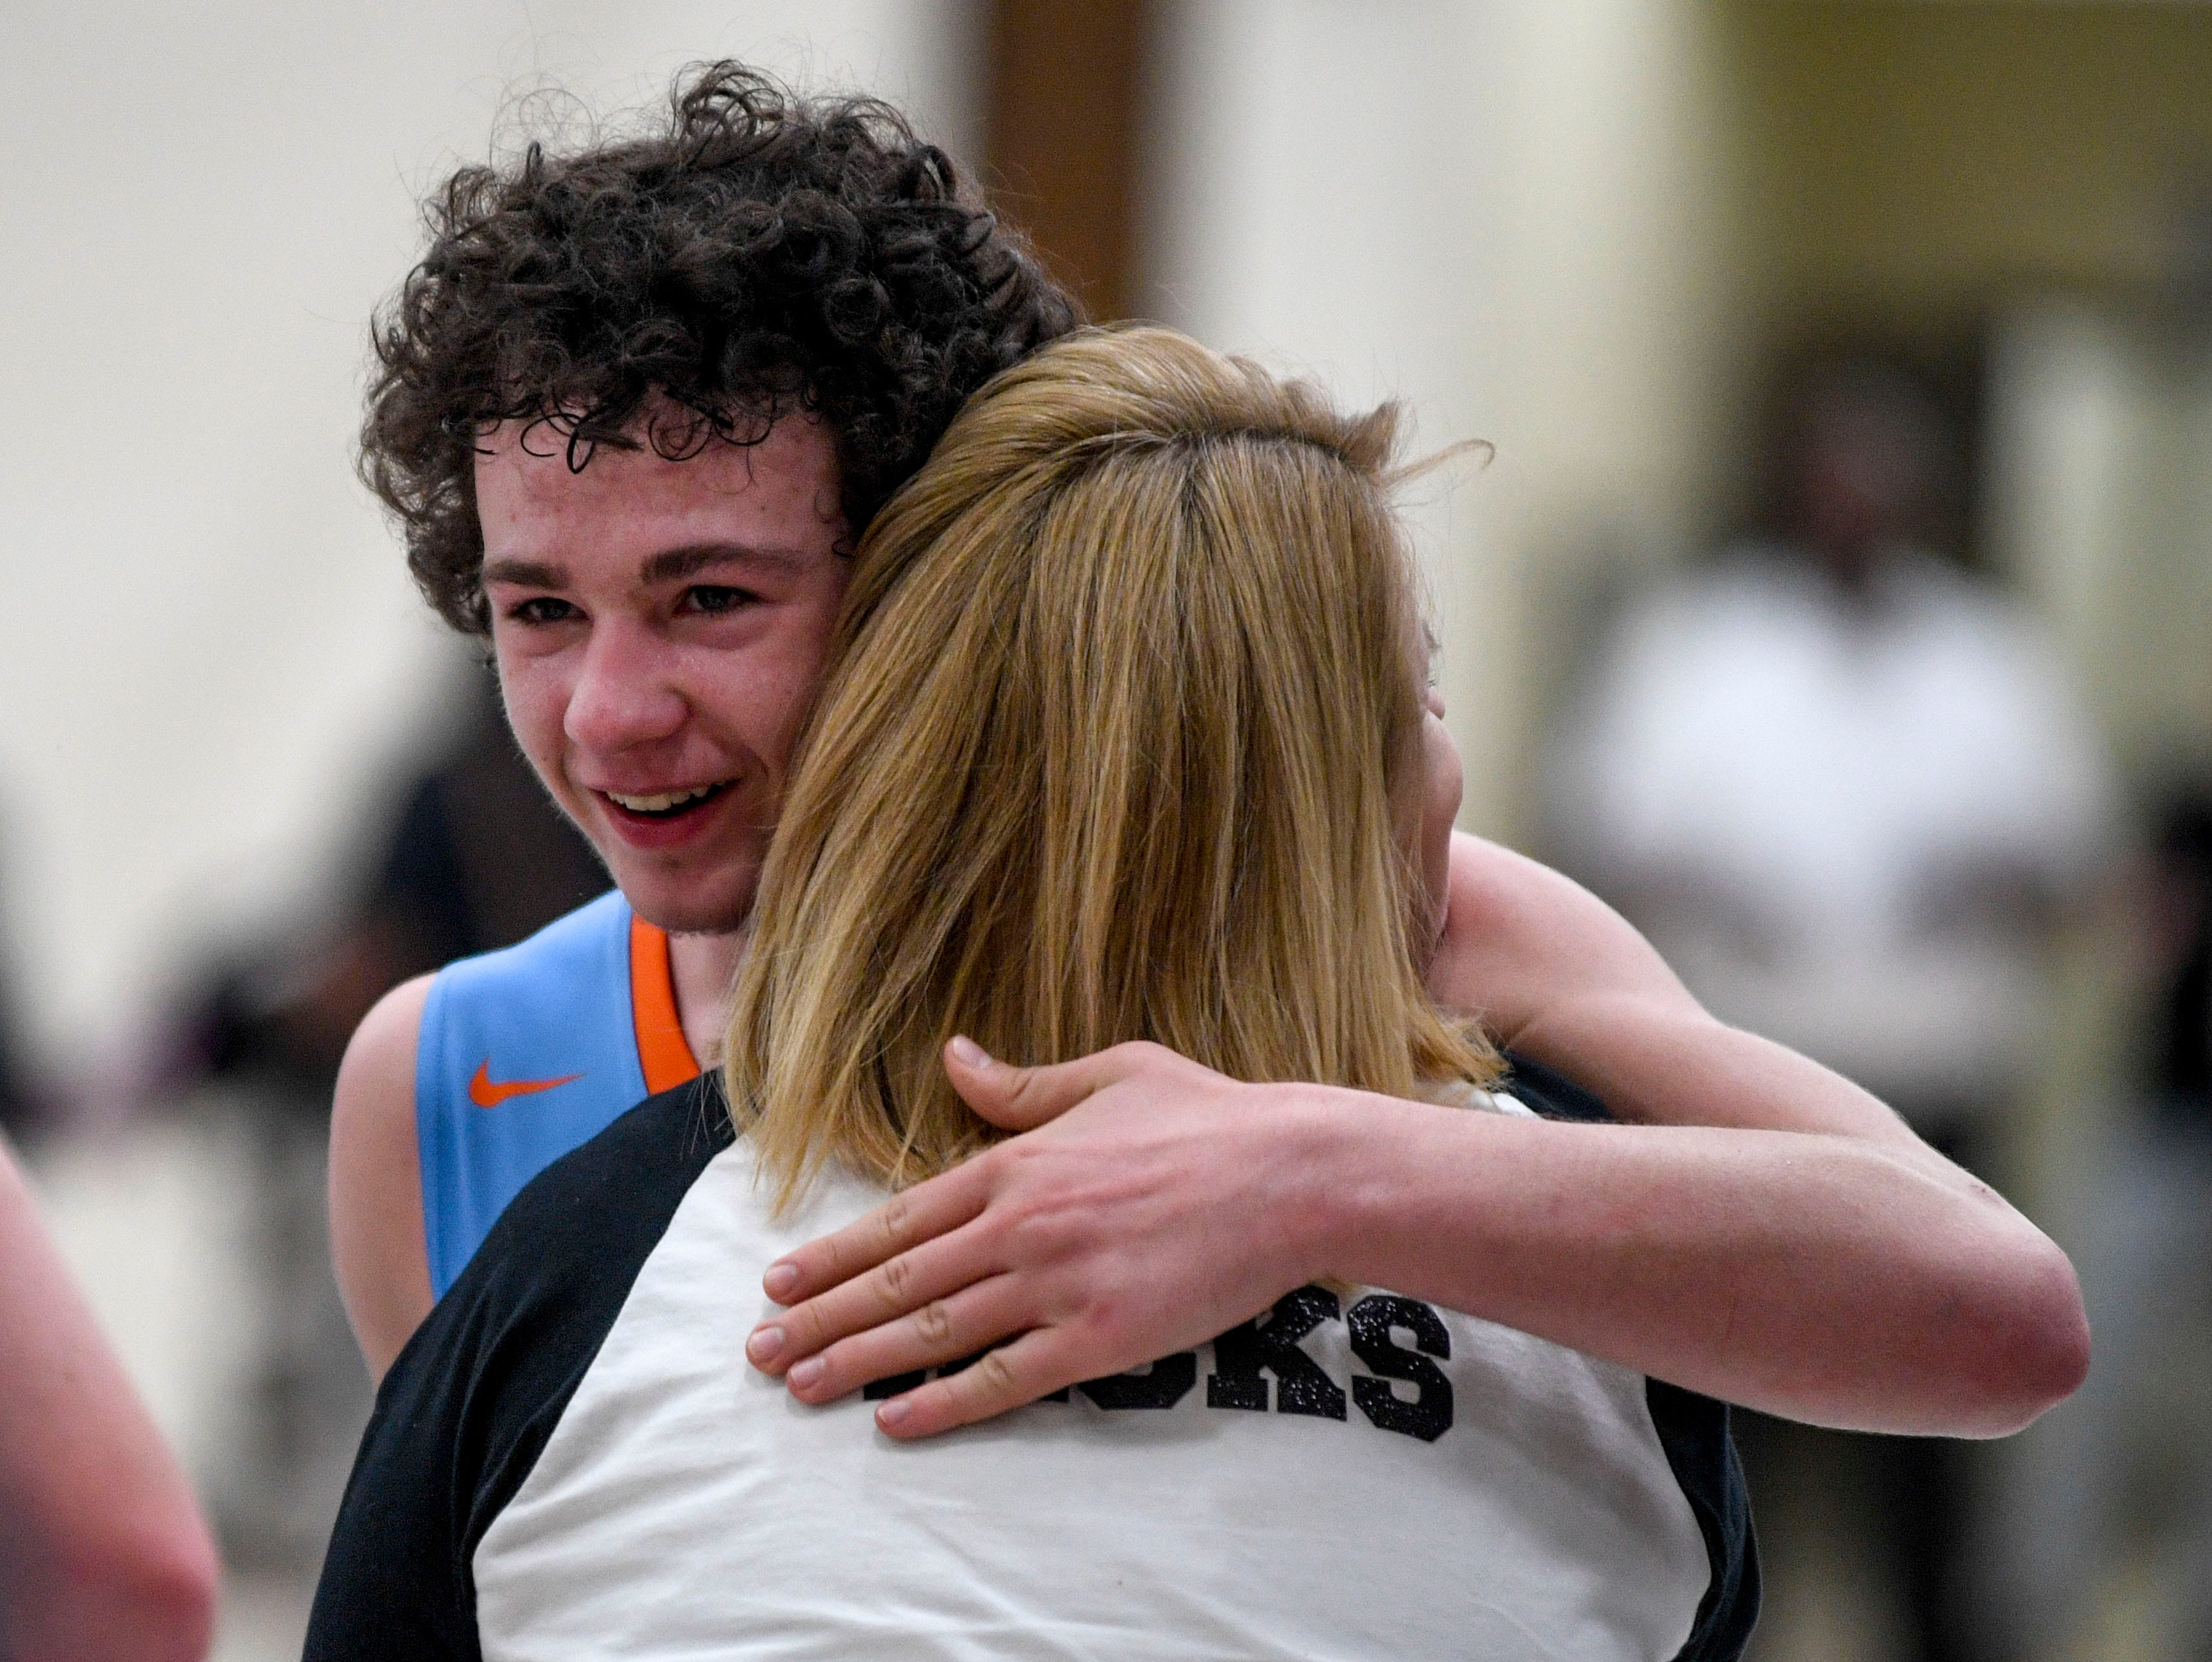 South Gibson's Caleb Pearce (3) is embraced after the buzzer goes off during the TSSAA Region 7-AA semifinal game between South Side and South Gibson after an upset result at Dyersburg High School, in Dyersburg, Tenn., on Tuesday, Feb. 26, 2019.